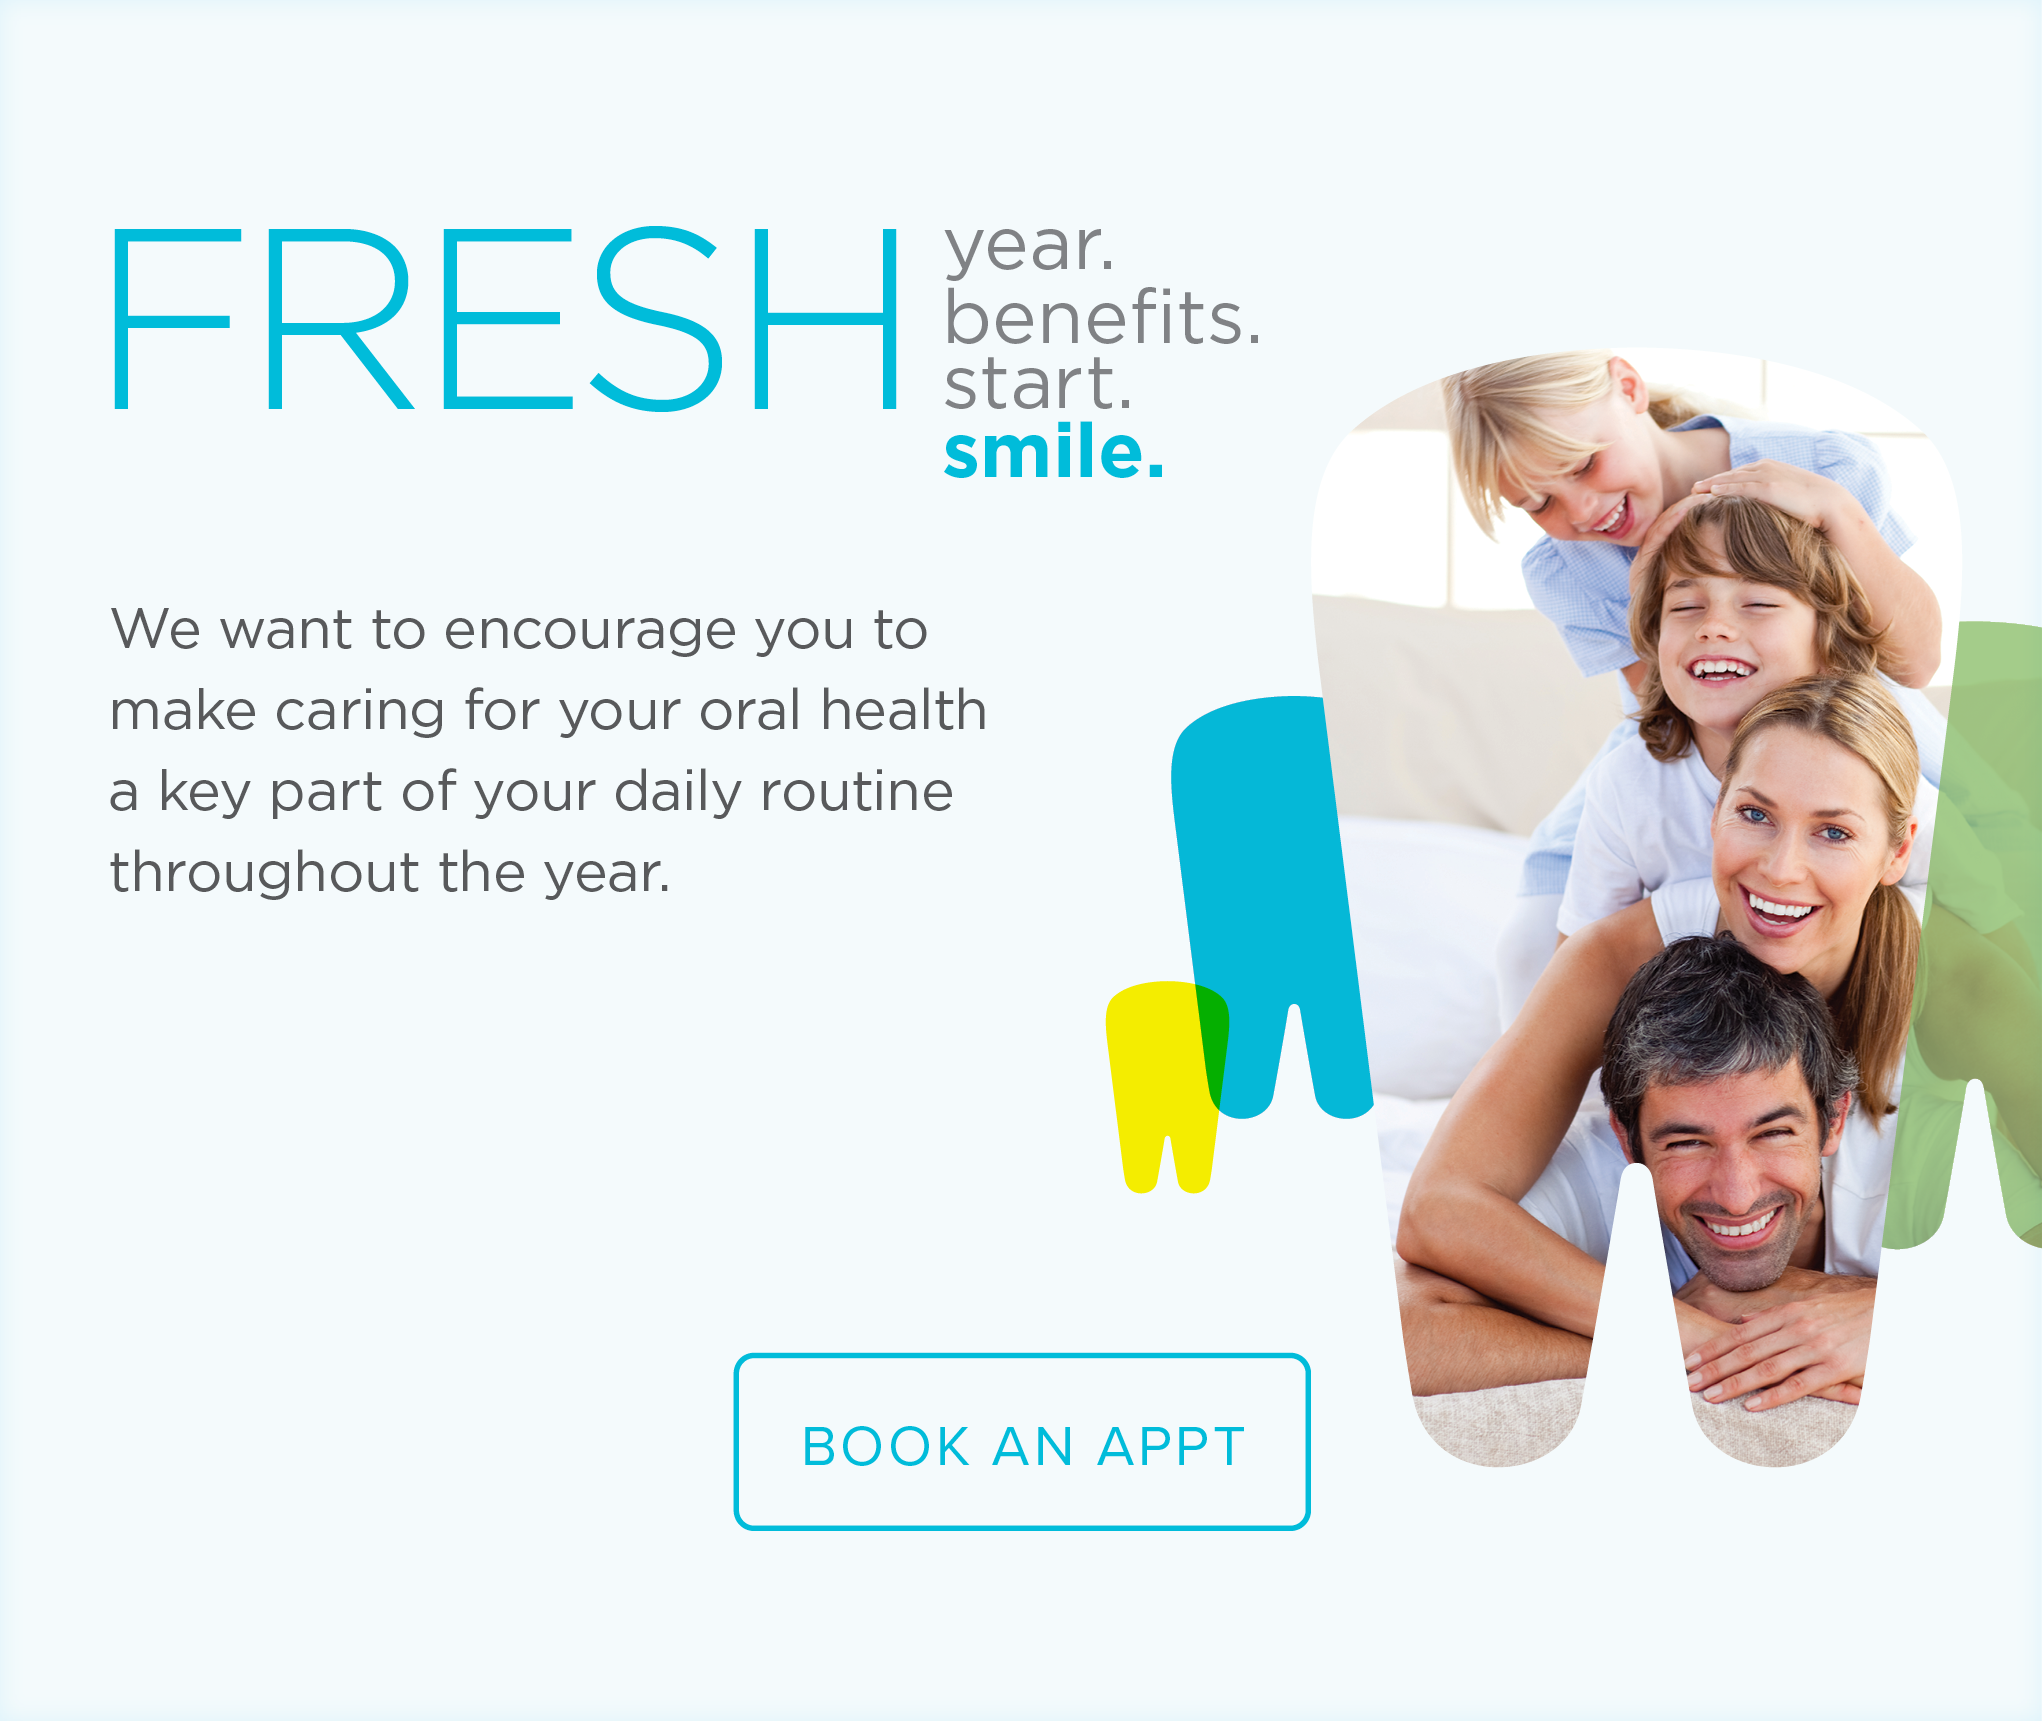 Village Dental Group and Orthodontics - Make the Most of Your Benefits